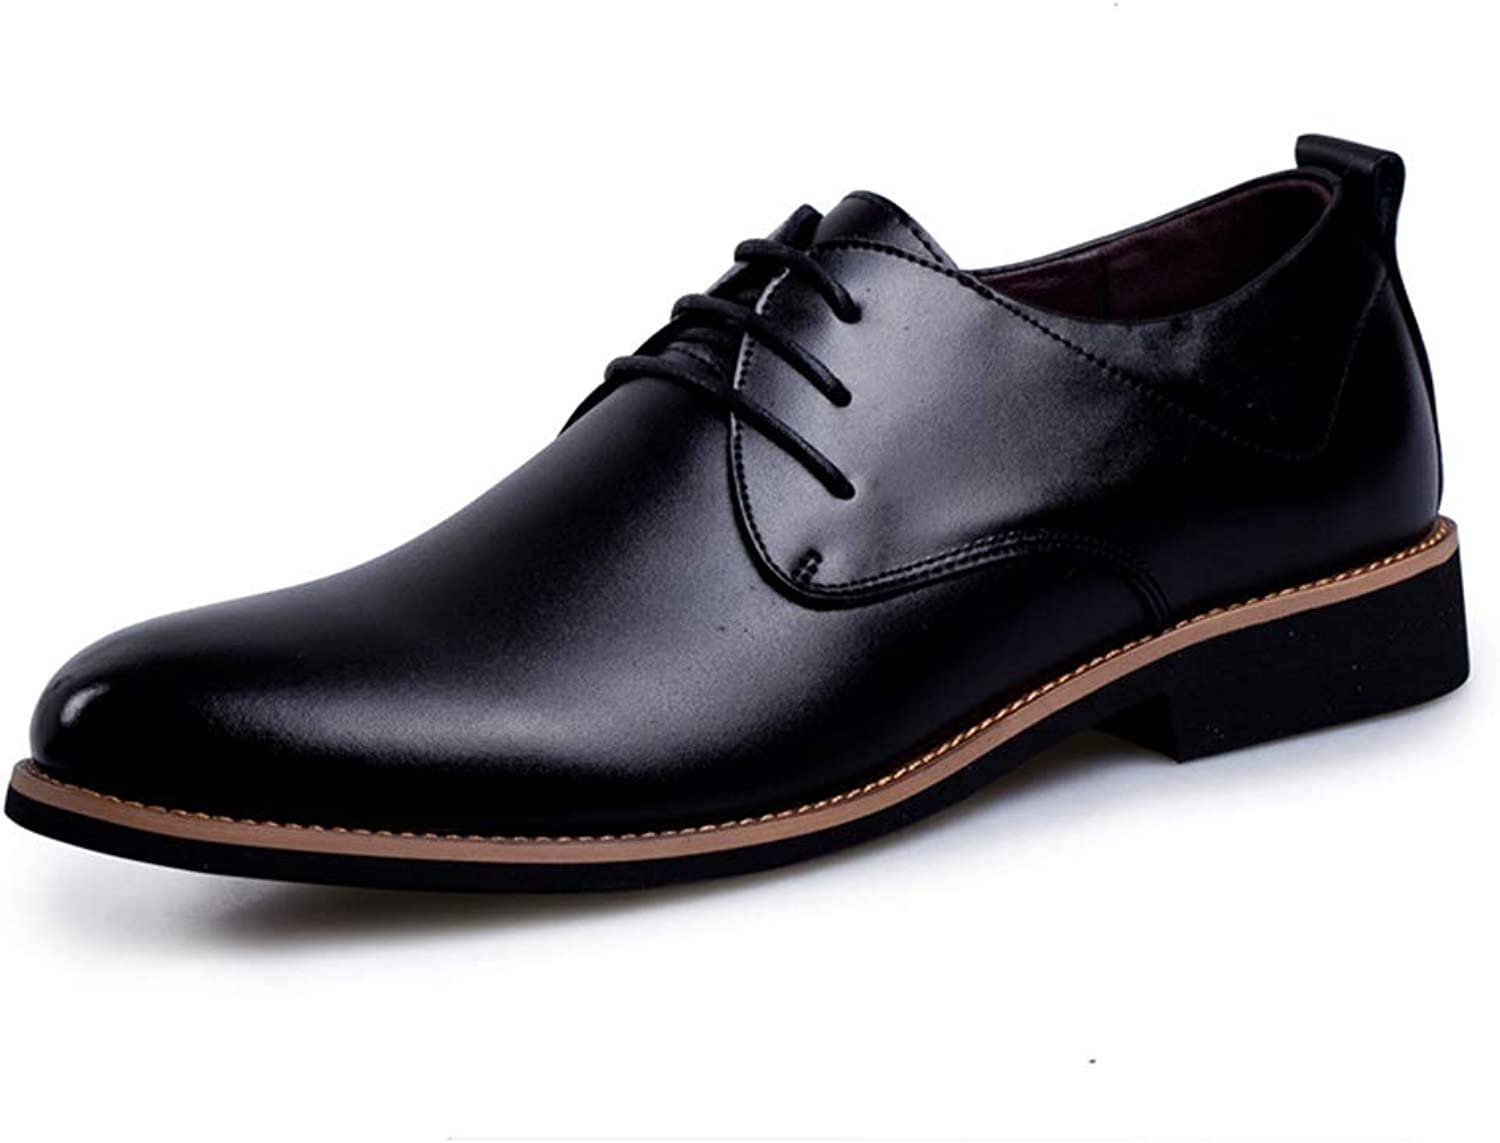 Oxford Compatible Men Low Stacked Heel Lace Up Genuine Leather Business Formal Wedding shoes (color   Black, Size   7 UK)